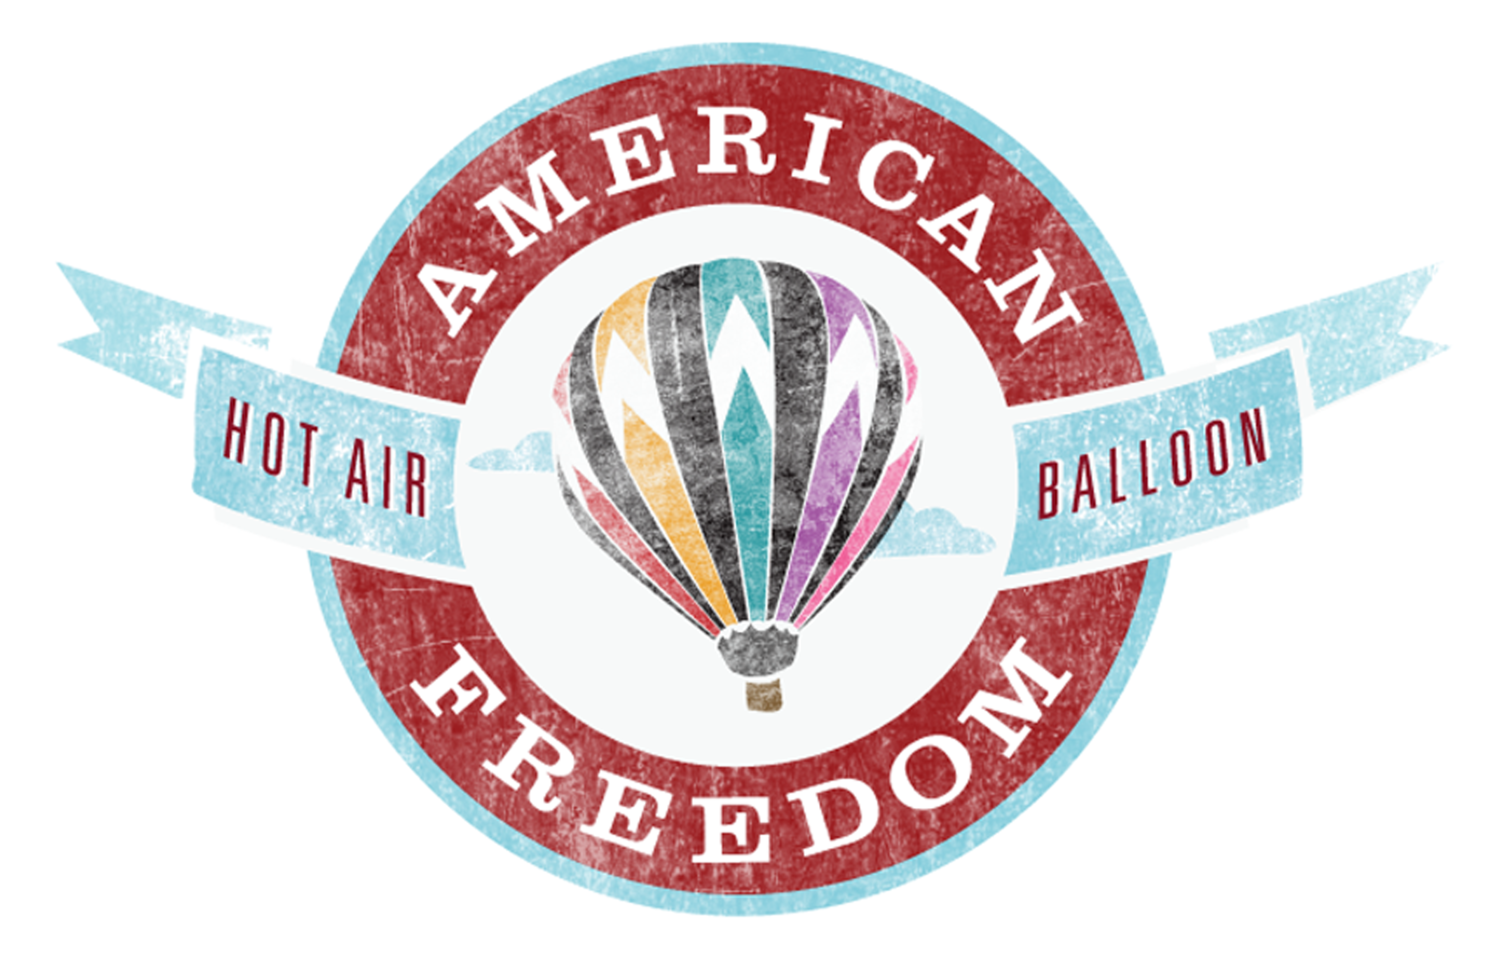 American Freedom Hot Air Balloon. Balloon rides in Berks, Pa